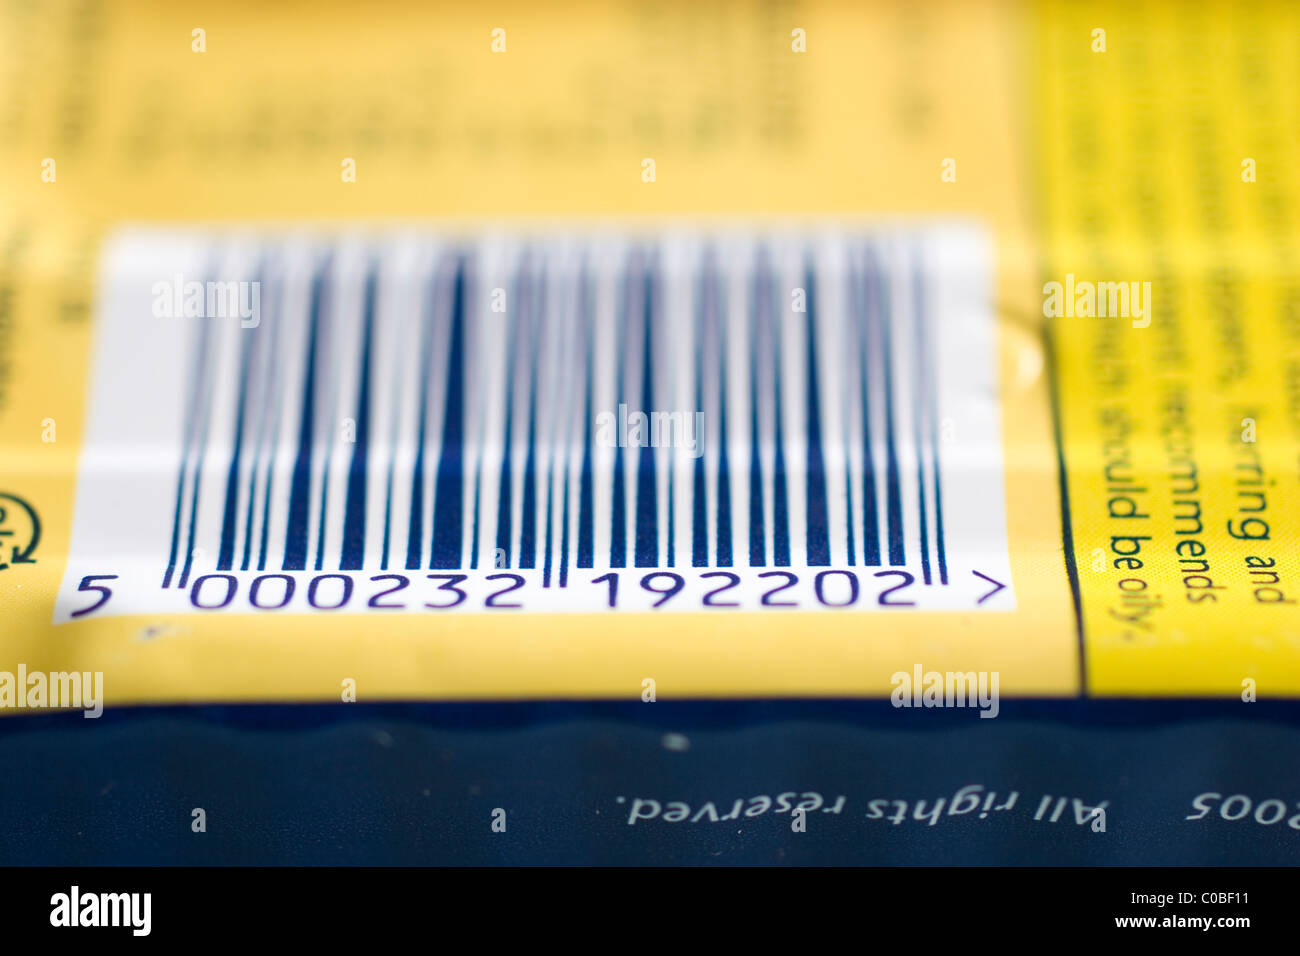 Barcode on food item - Stock Image